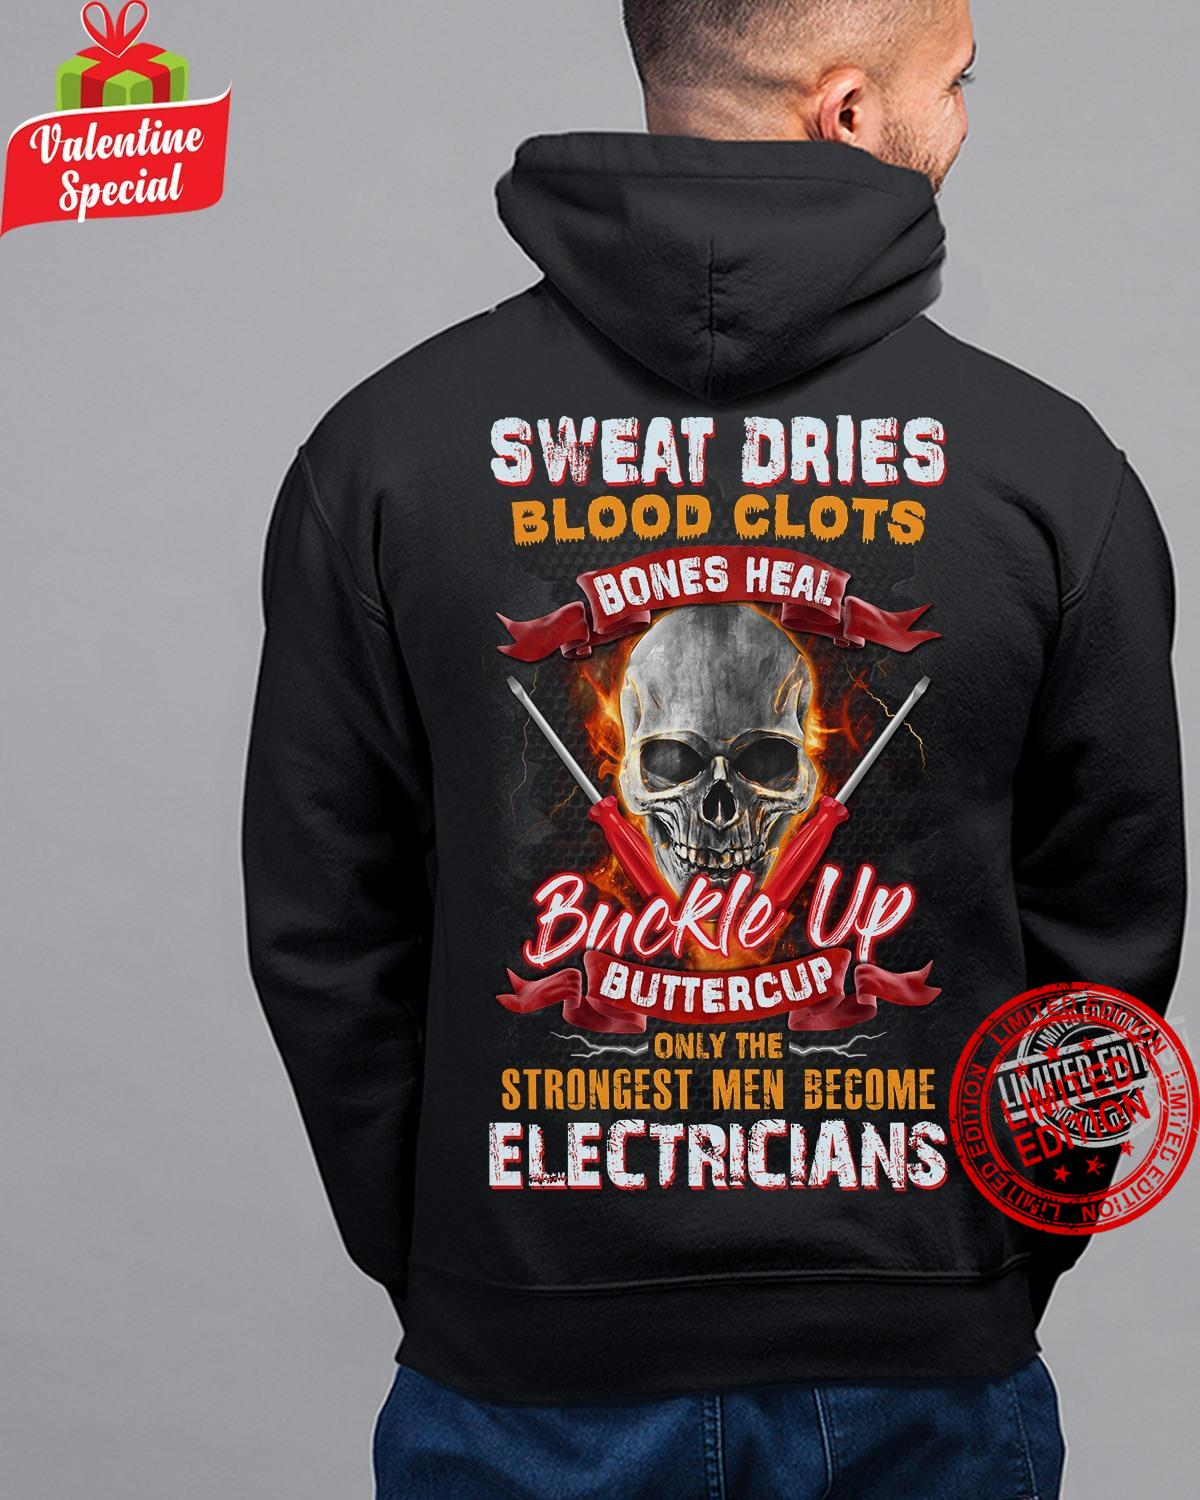 Sweat Dries Blood Clots Bones Heal Buckle Up Buttercup Only The Strongest Men Become Electricians Shirt